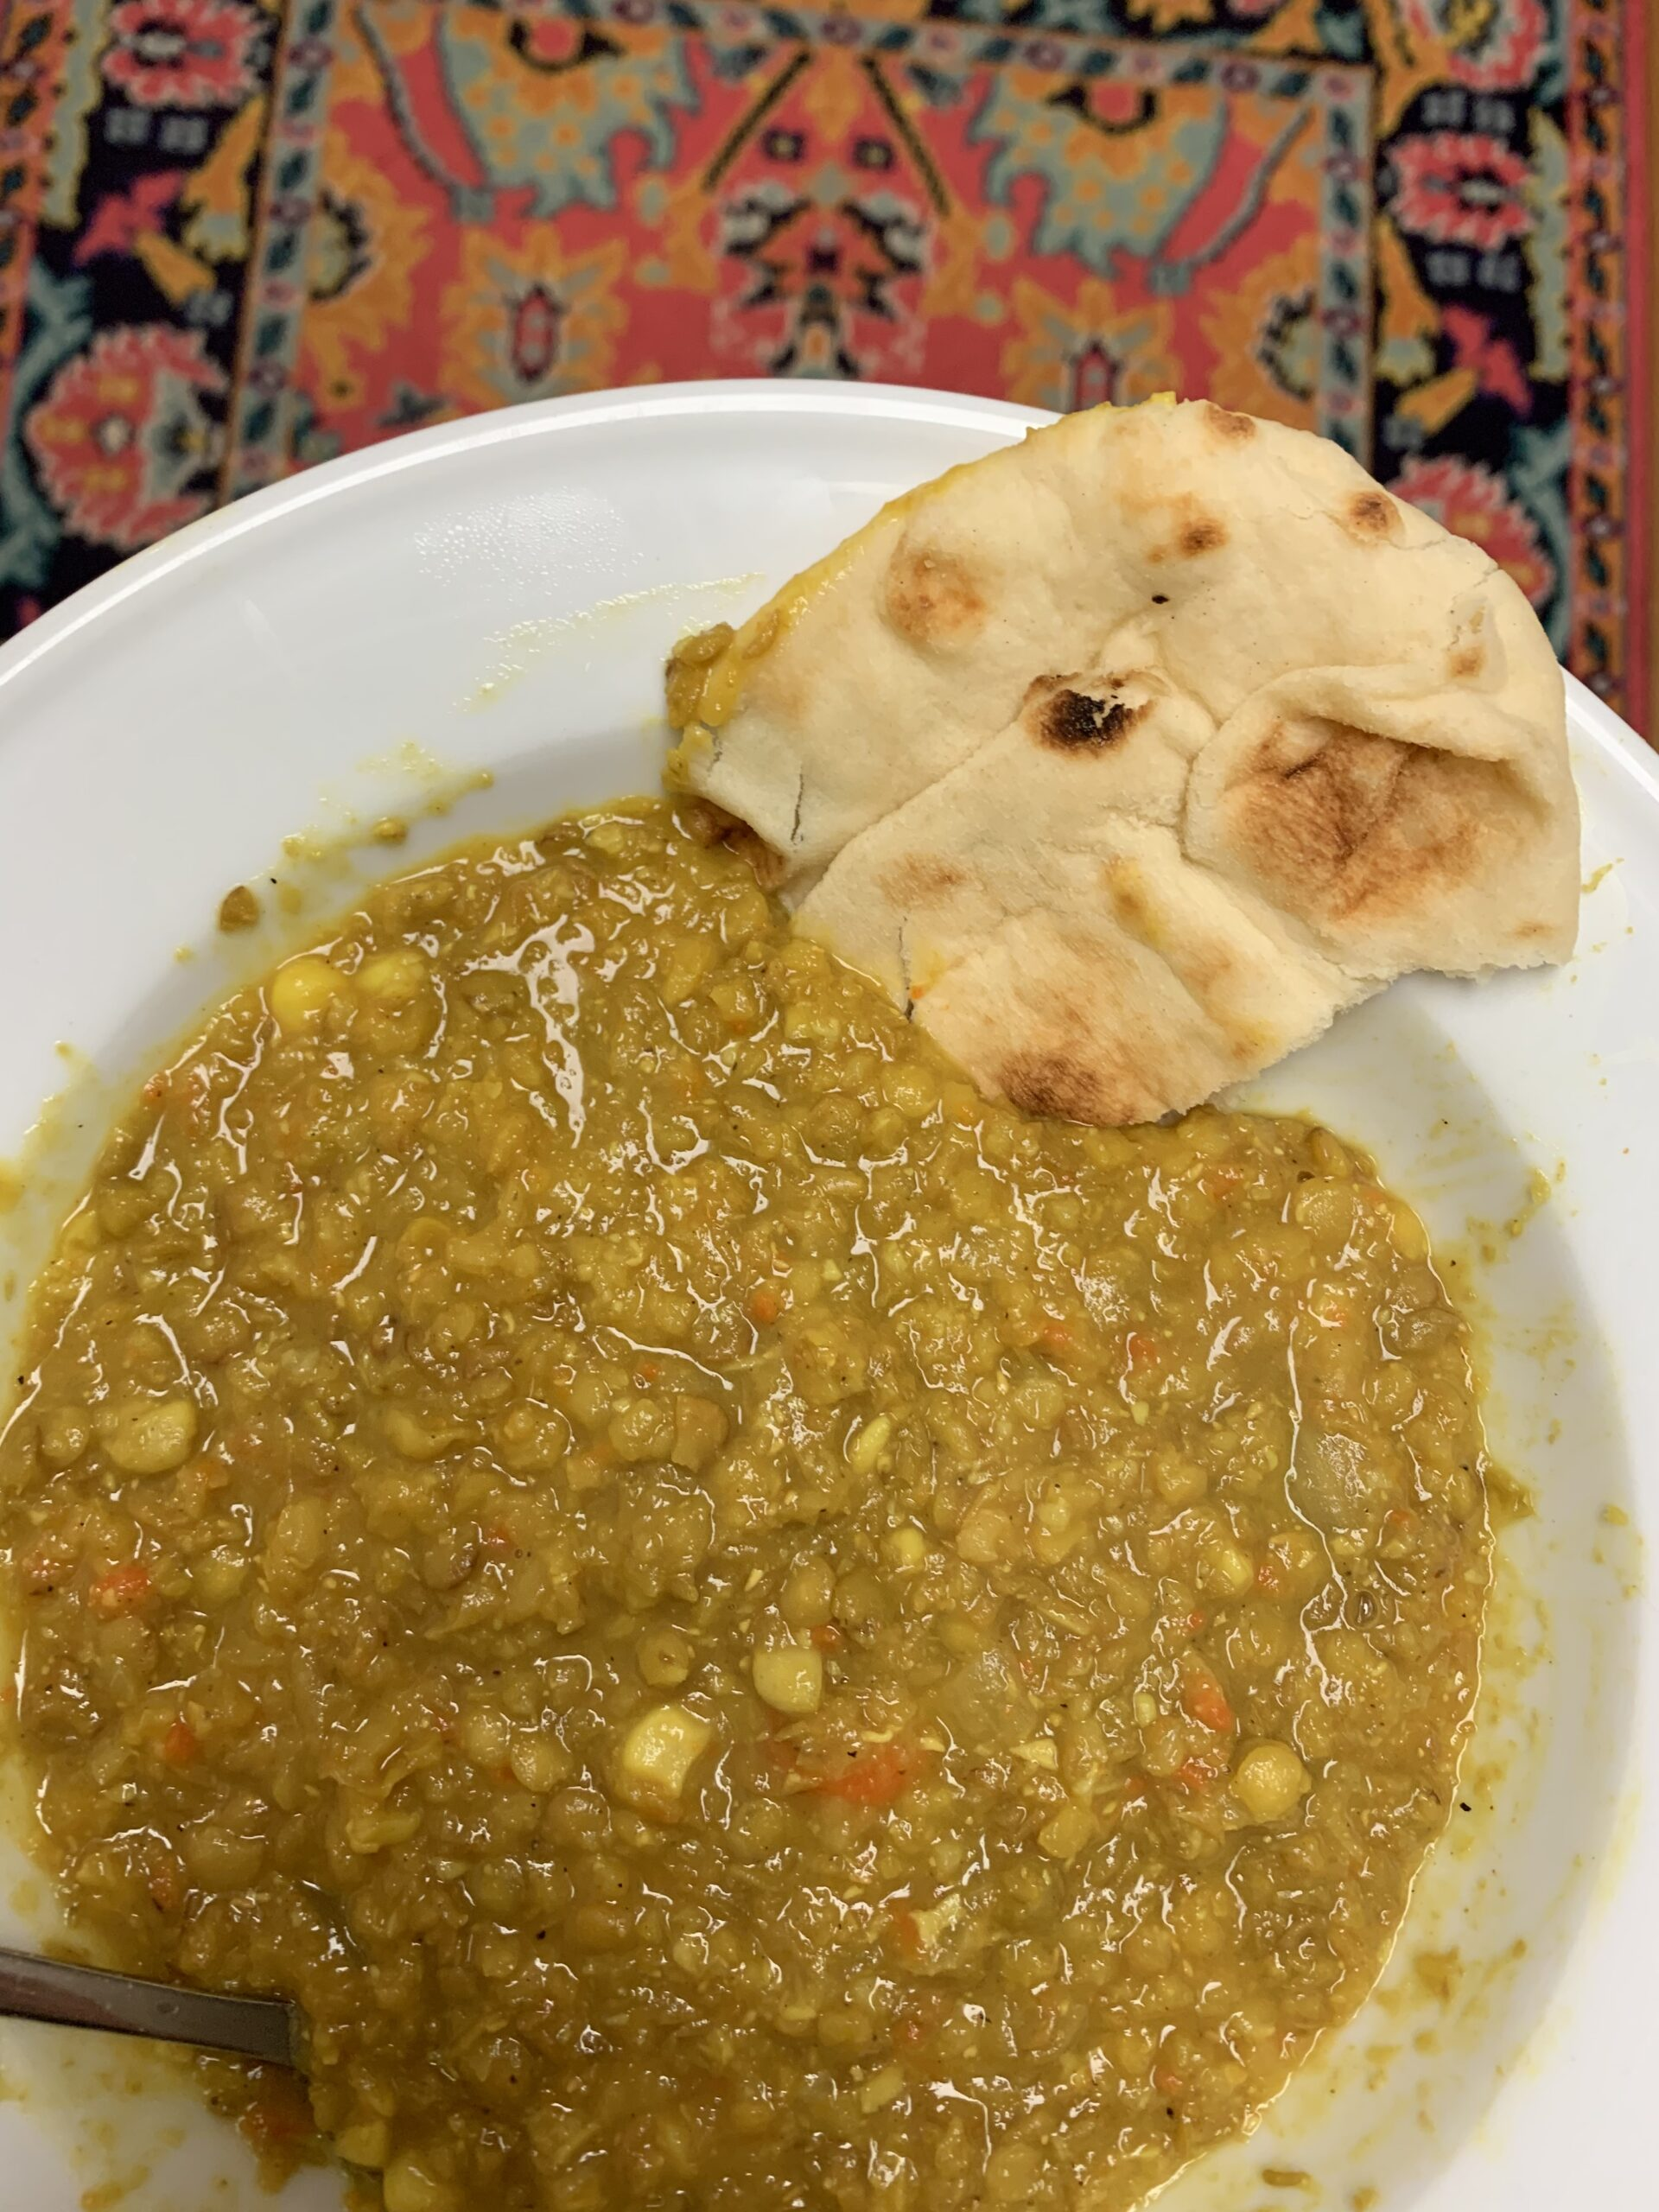 Eating Lately - Lemony Lentil Stew